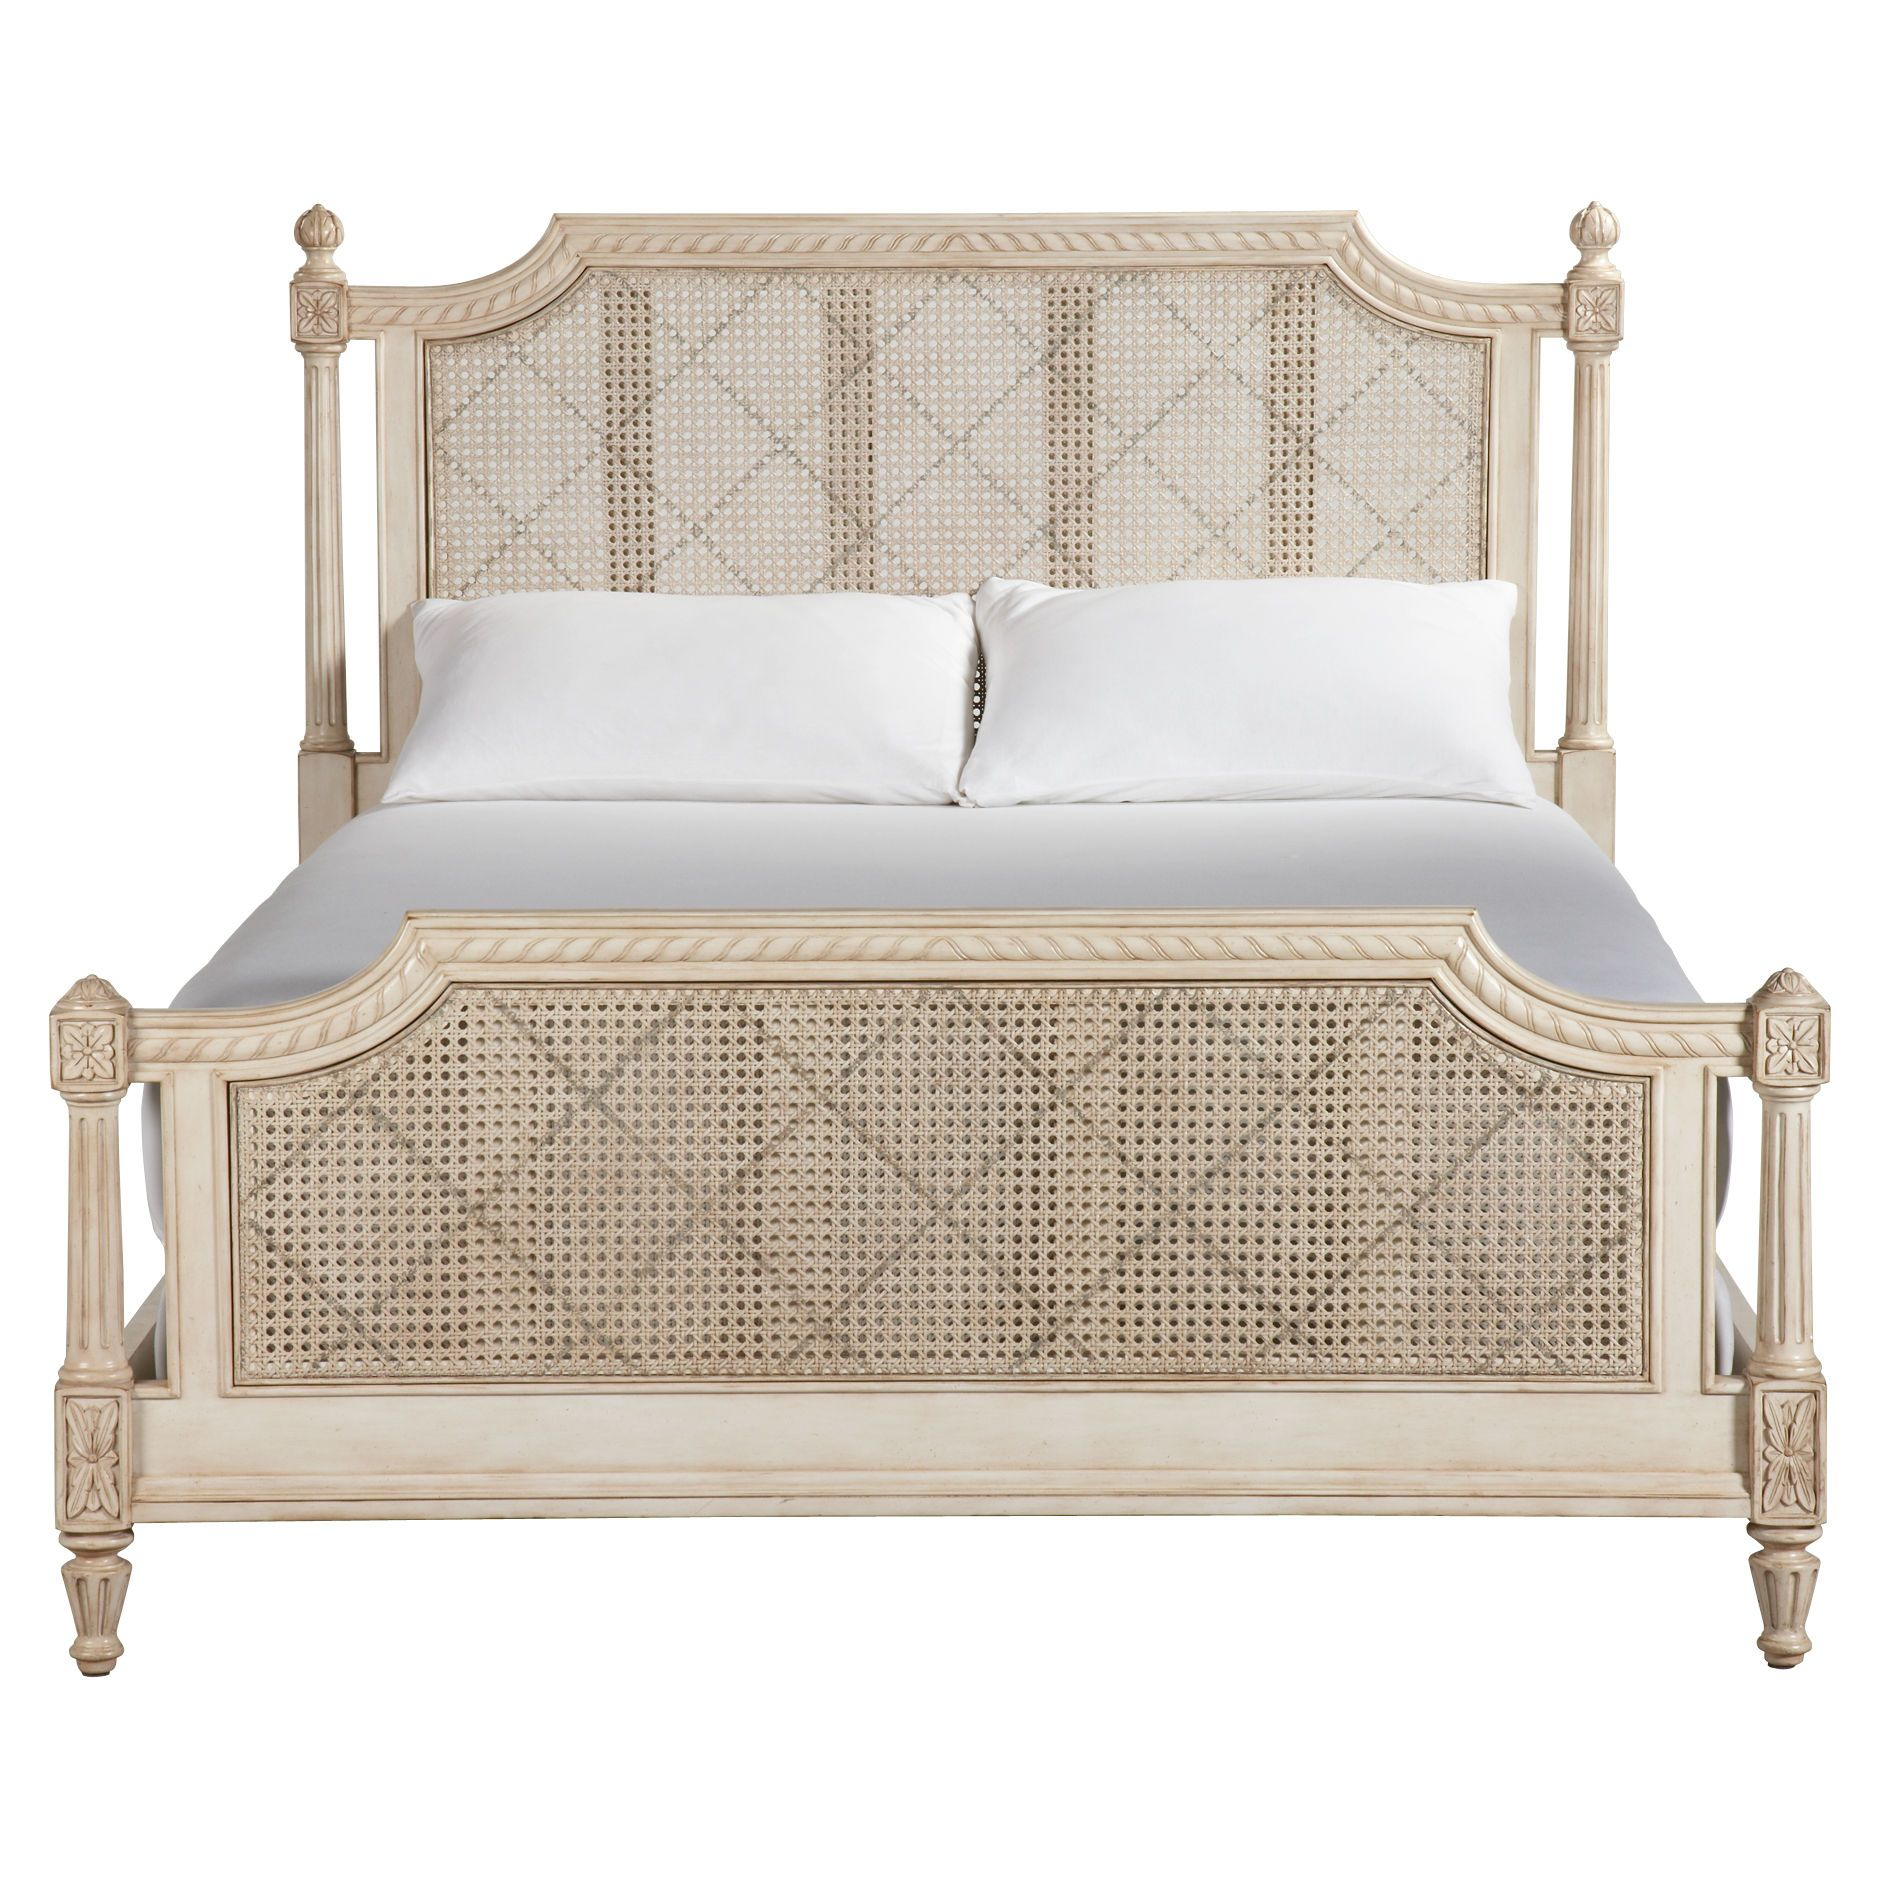 Elise bed ethan allen us unfortunately only a queen not twin full leighton 39 s bedroom - Ethan allen queen beds ...